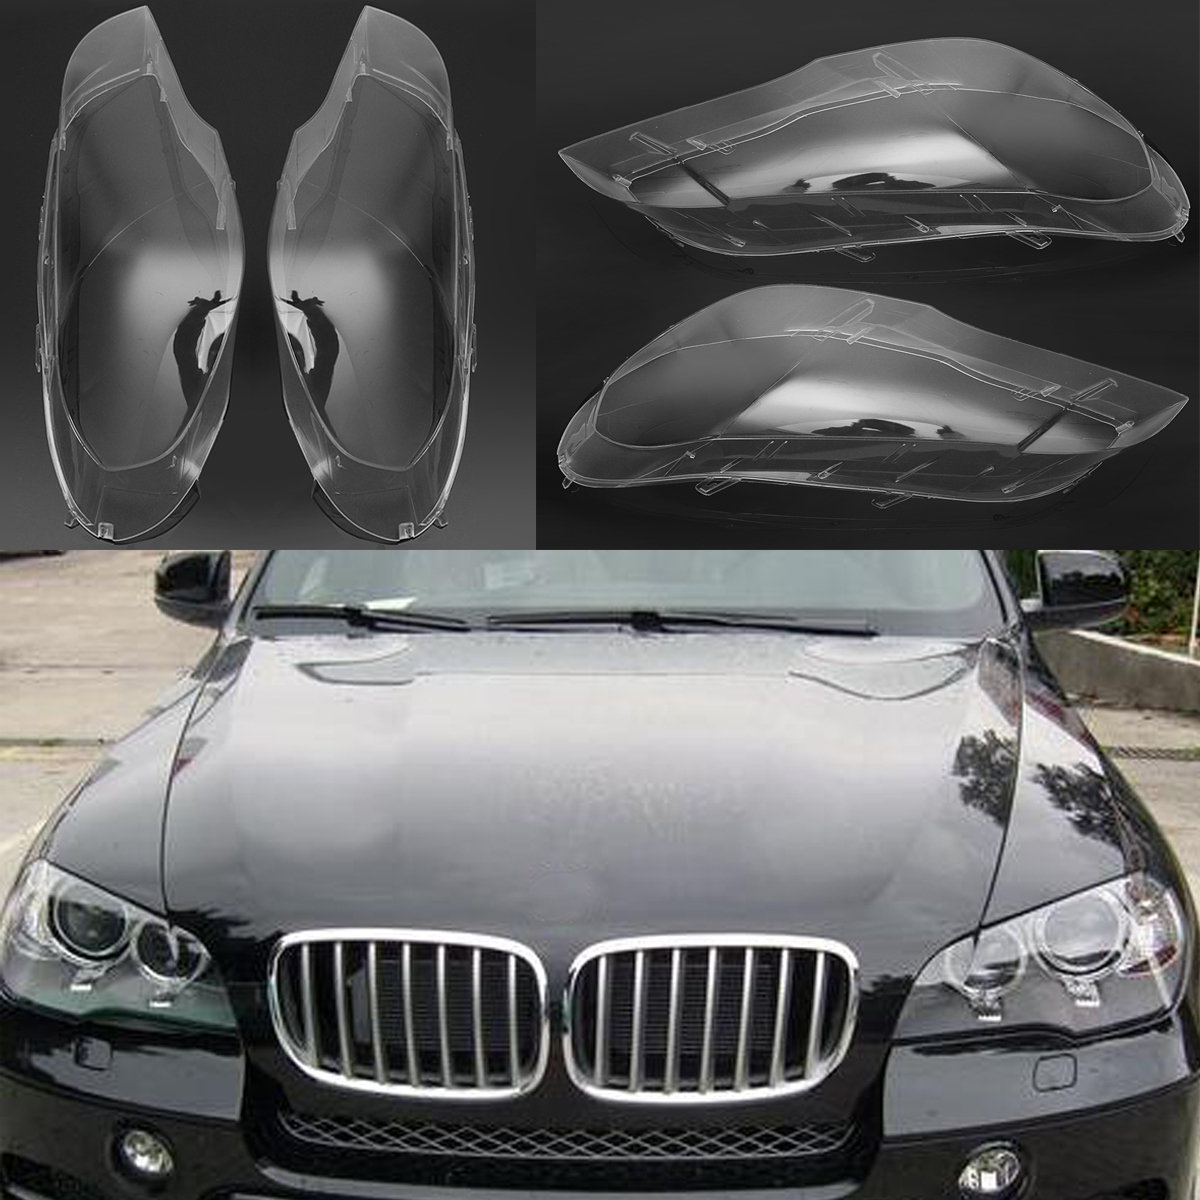 1pair Left &Right Transparent Headlight Headlamp Lens Replacement Cover for BMW 2007-2012 X5 E70 Car Lights Headlight Lamp Case pair car front headlamp clear lens headlight plastic shell clear cover for bmw e90 e91 2004 2005 2006 2007